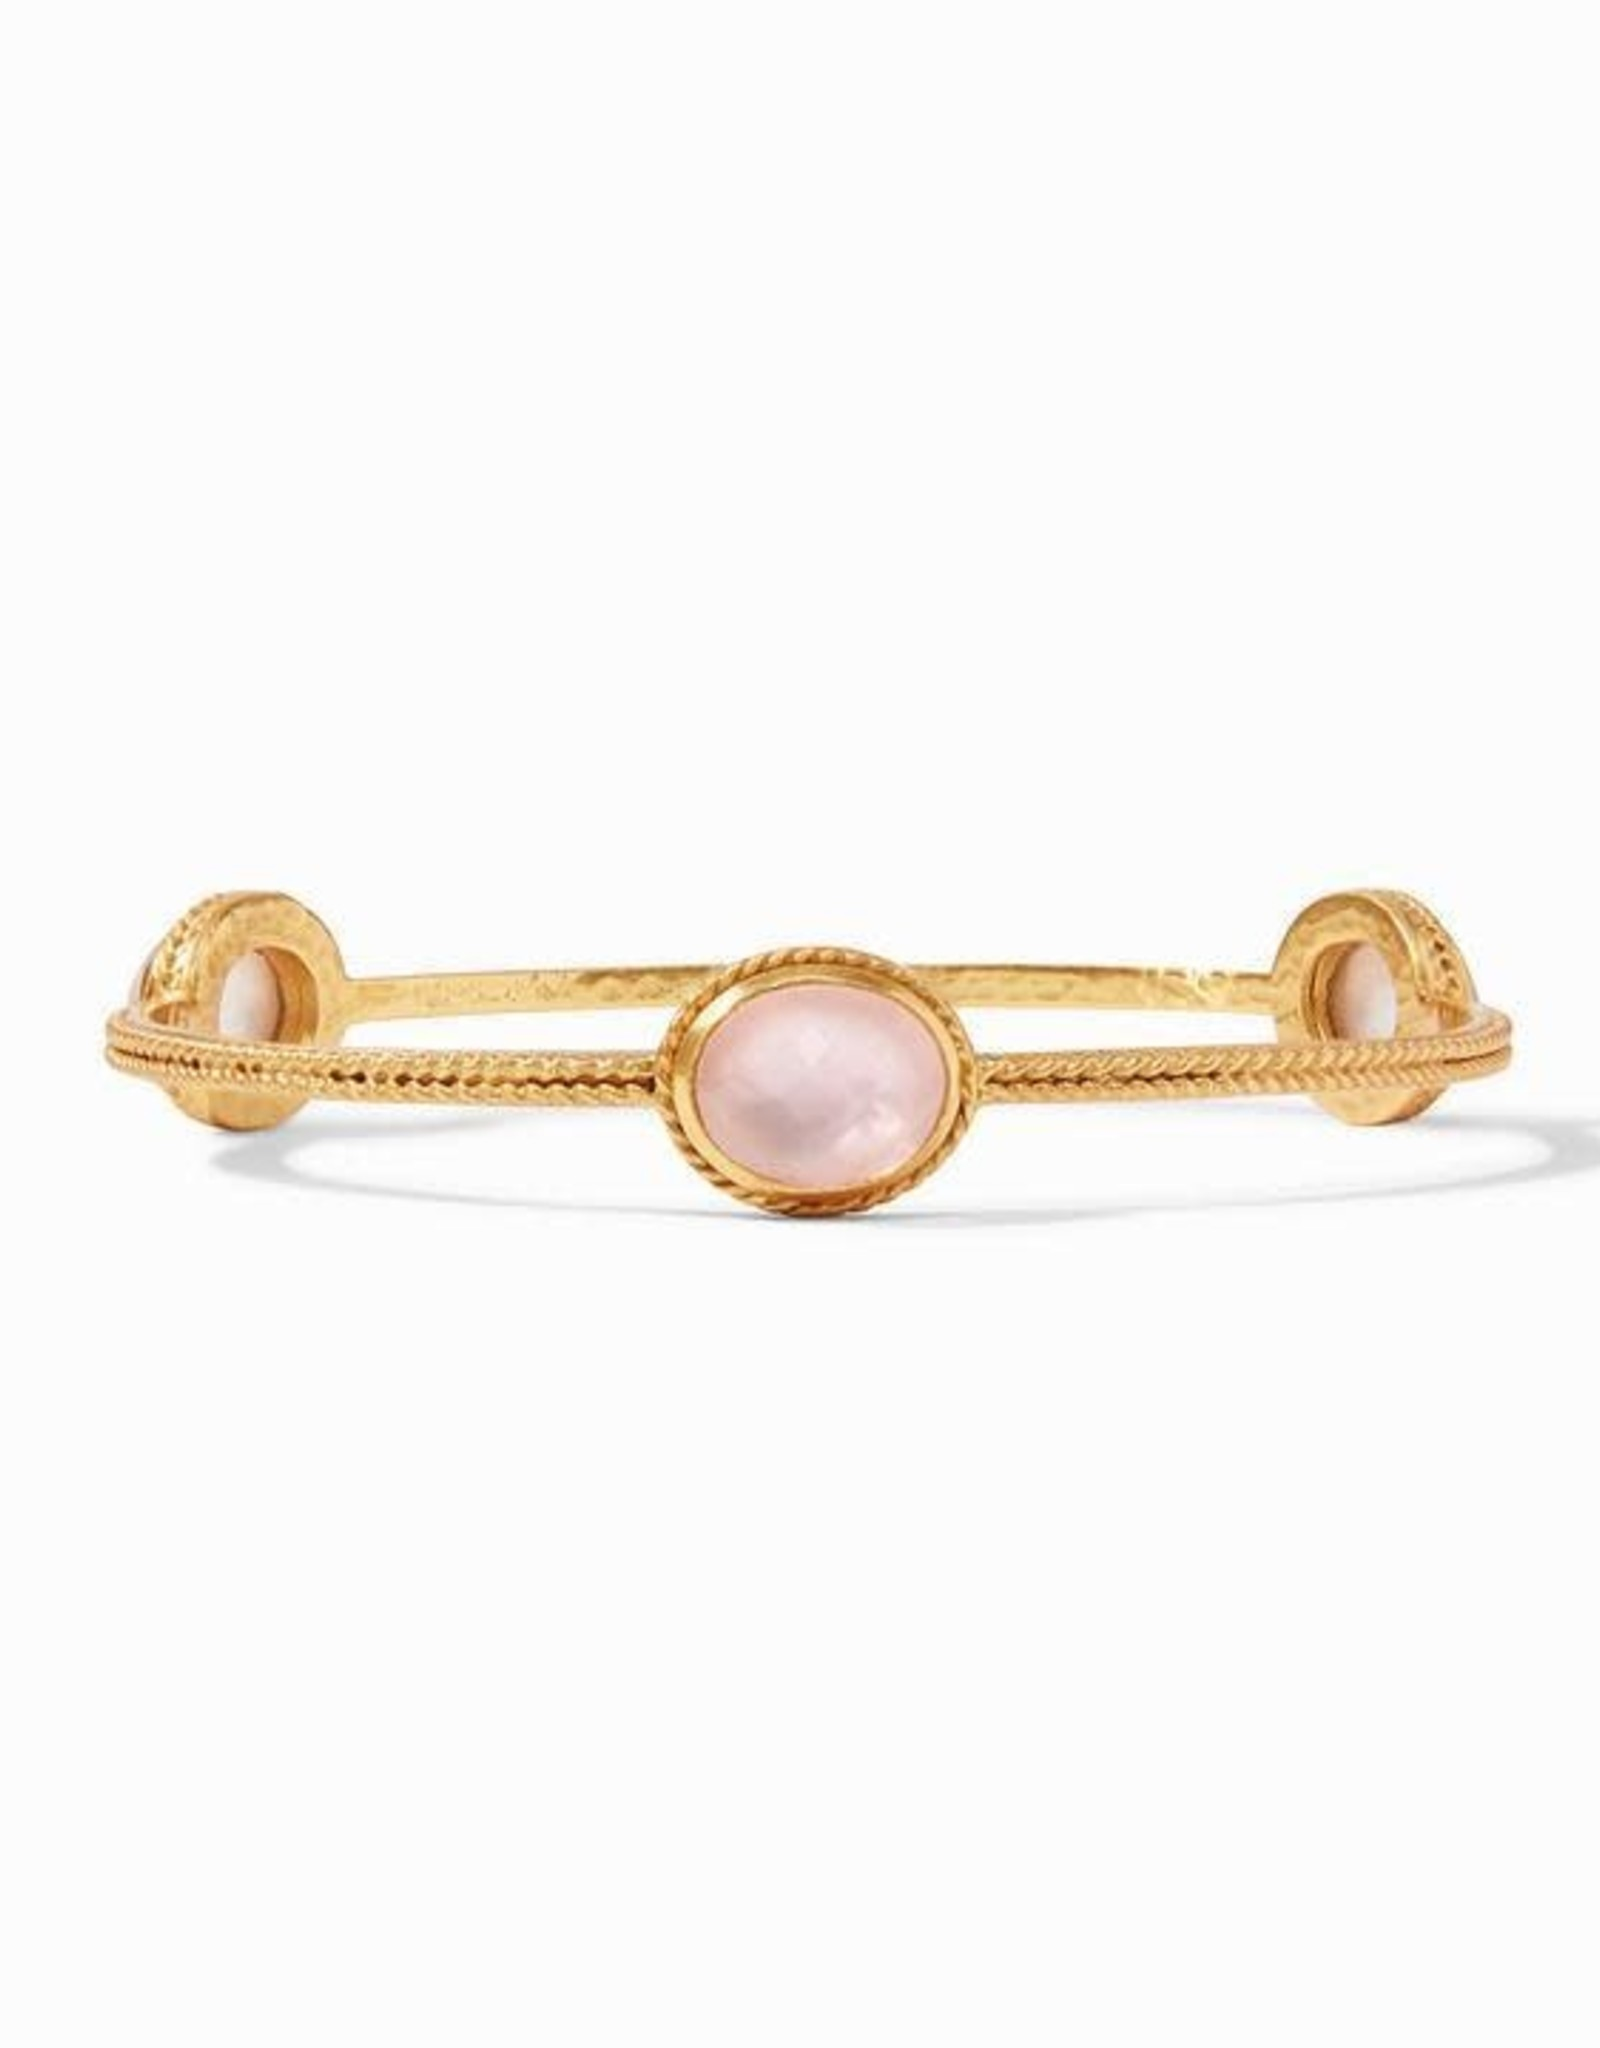 Julie Vos Calypso Bangle Gold Iridescent Rose - Medium